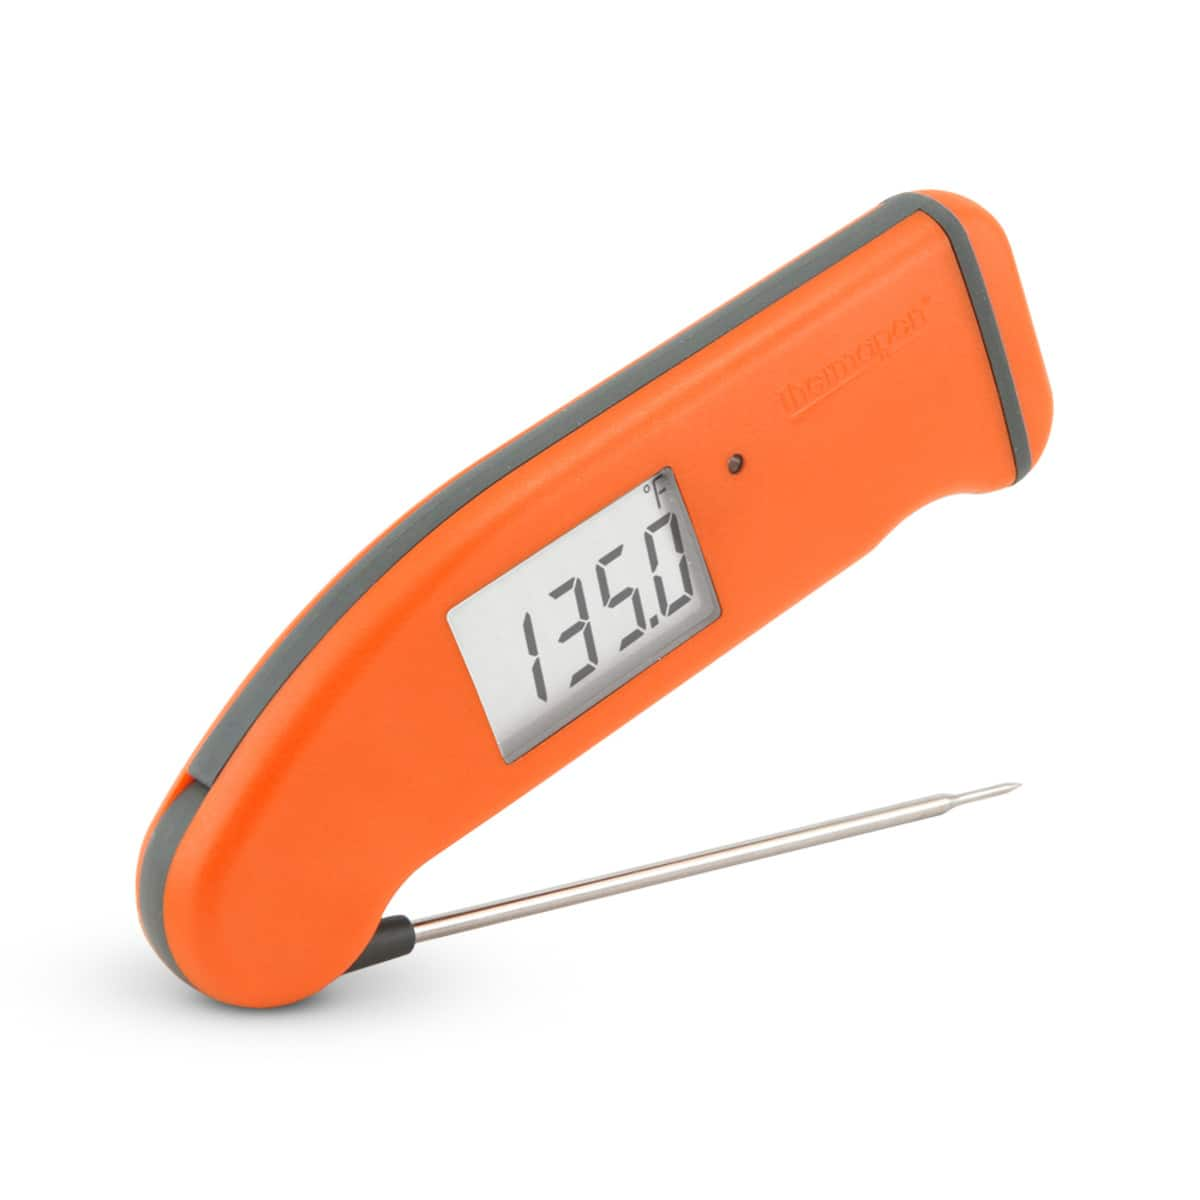 ThermoWorks Thermapen Mk4 20% off $79.20 (Orange and Black)